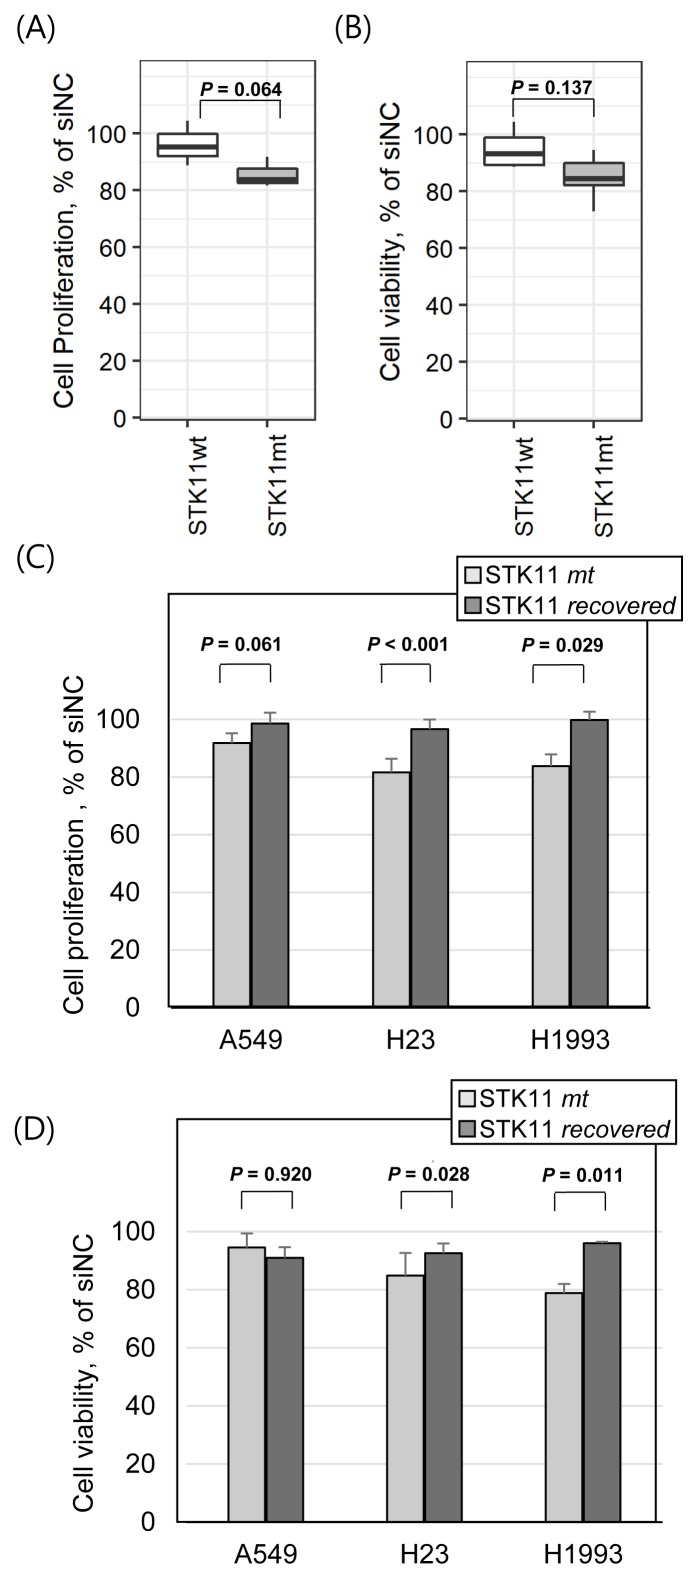 STK11 mutation-dependent anticancer efficacy of <t>ENO3</t> gene knockdown Average variation in cell proliferation (A) and cell viability (B) of STK11 wild-type cell lines (H322M, HCC827, and H1975) and mutant cell lines (A549, H23, and H1993) by the ENO3 gene knockdown using siRNAs. Comparative changes in cell proliferation (C) and cell viability (D) in STK11 -mutant parental cells and STK11 recovered cells by the ENO3 gene knockdown. Cell proliferation was measured based on the direct cell count in the well. Cell viability was measured using CellTiter Blue assay (see the Materials and Methods section for detail). All y-axes represent percentage of cell proliferation or cell viability divided by an average of negative control. Student's one-tailed t -test was used to test statistical significance. Error bars indicate SD.